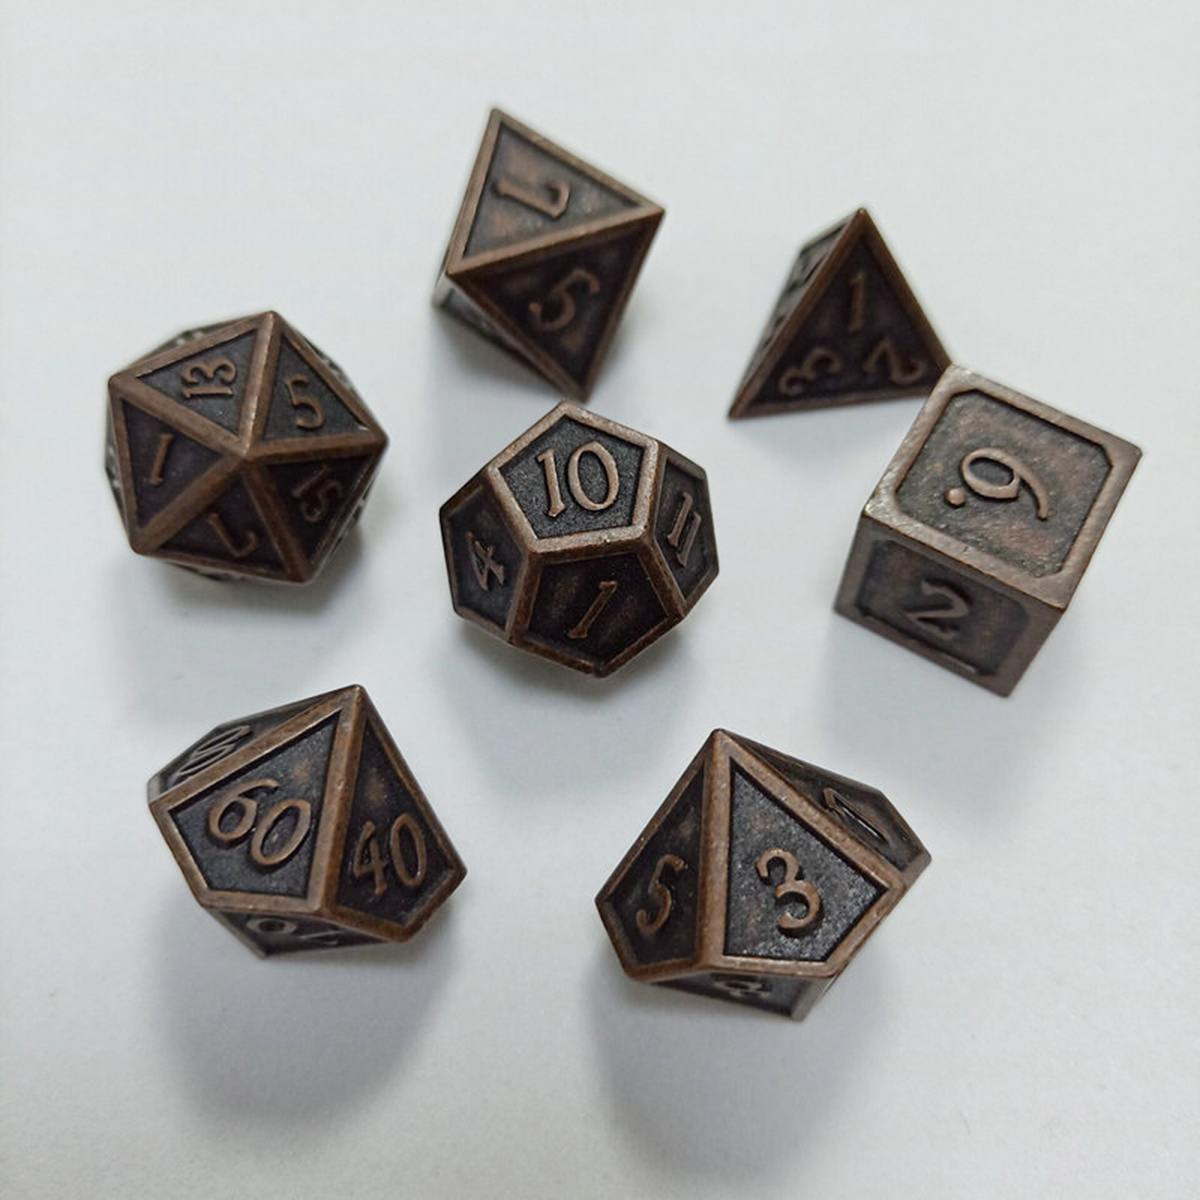 7Pcs Embossed Heavy <font><b>Metal</b></font> Polyhedral Dice Set for RPG Board Dragons Game DND RPG MTG <font><b>D20</b></font> D12 D10 D8 D6 D4 Table Board Game image